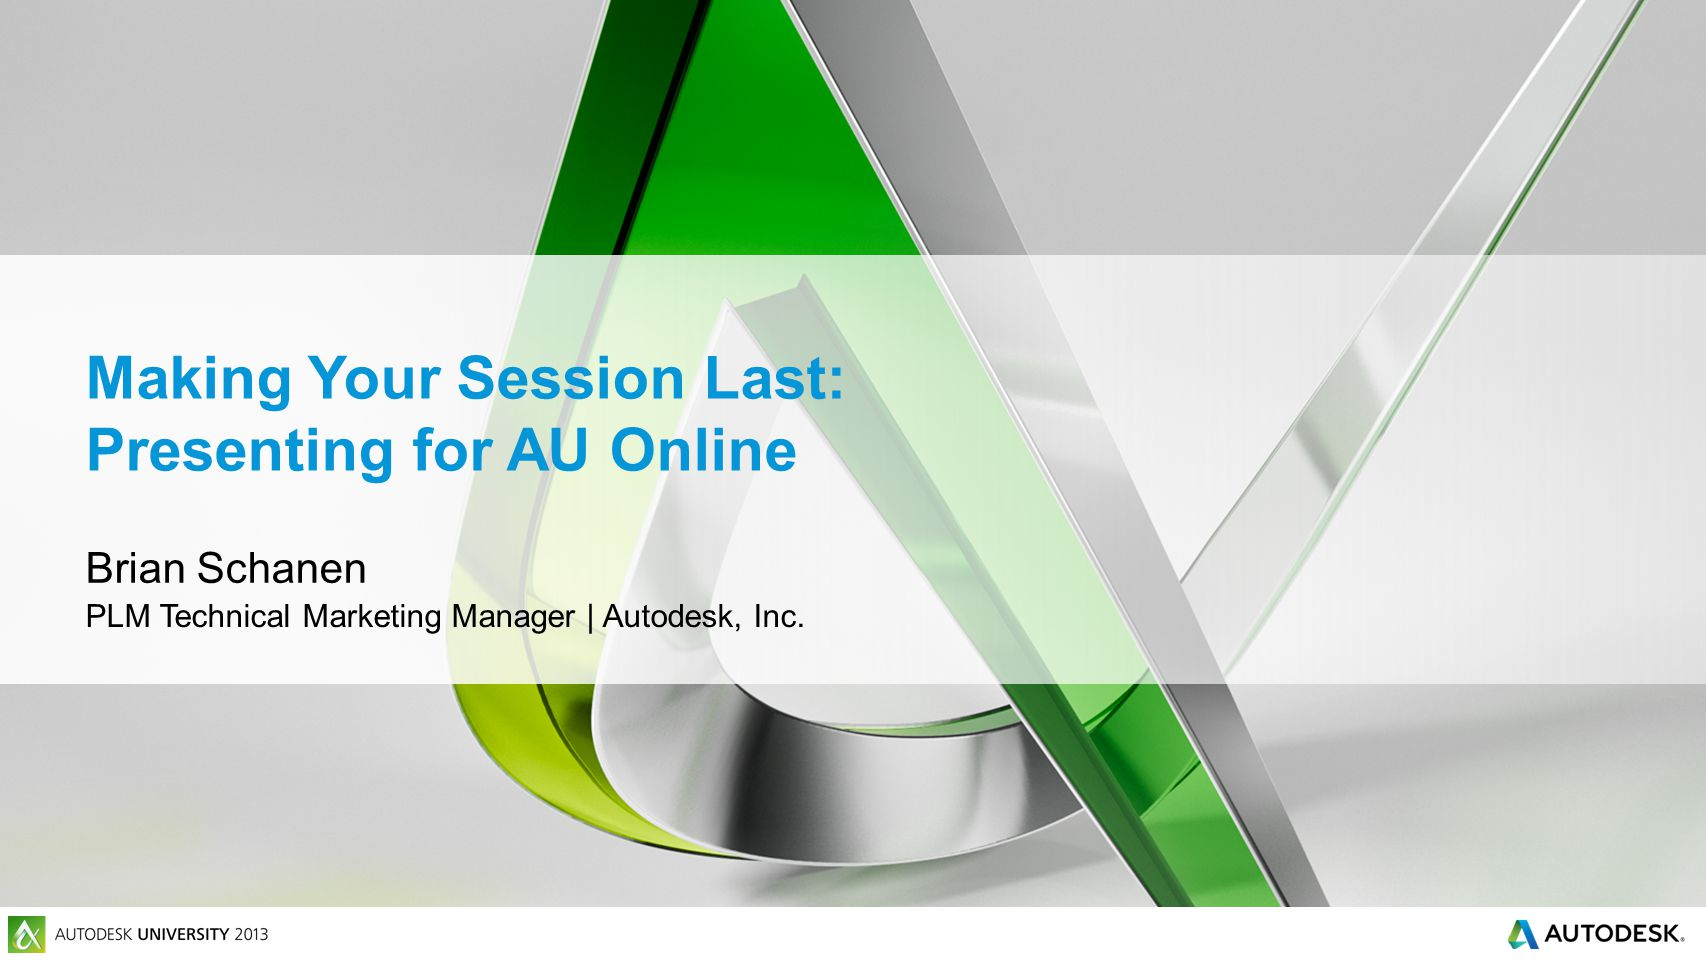 Making Your Session Last: Presenting for AU Online Brian Schanen PLM Technical Marketing Manager | Autodesk, Inc.